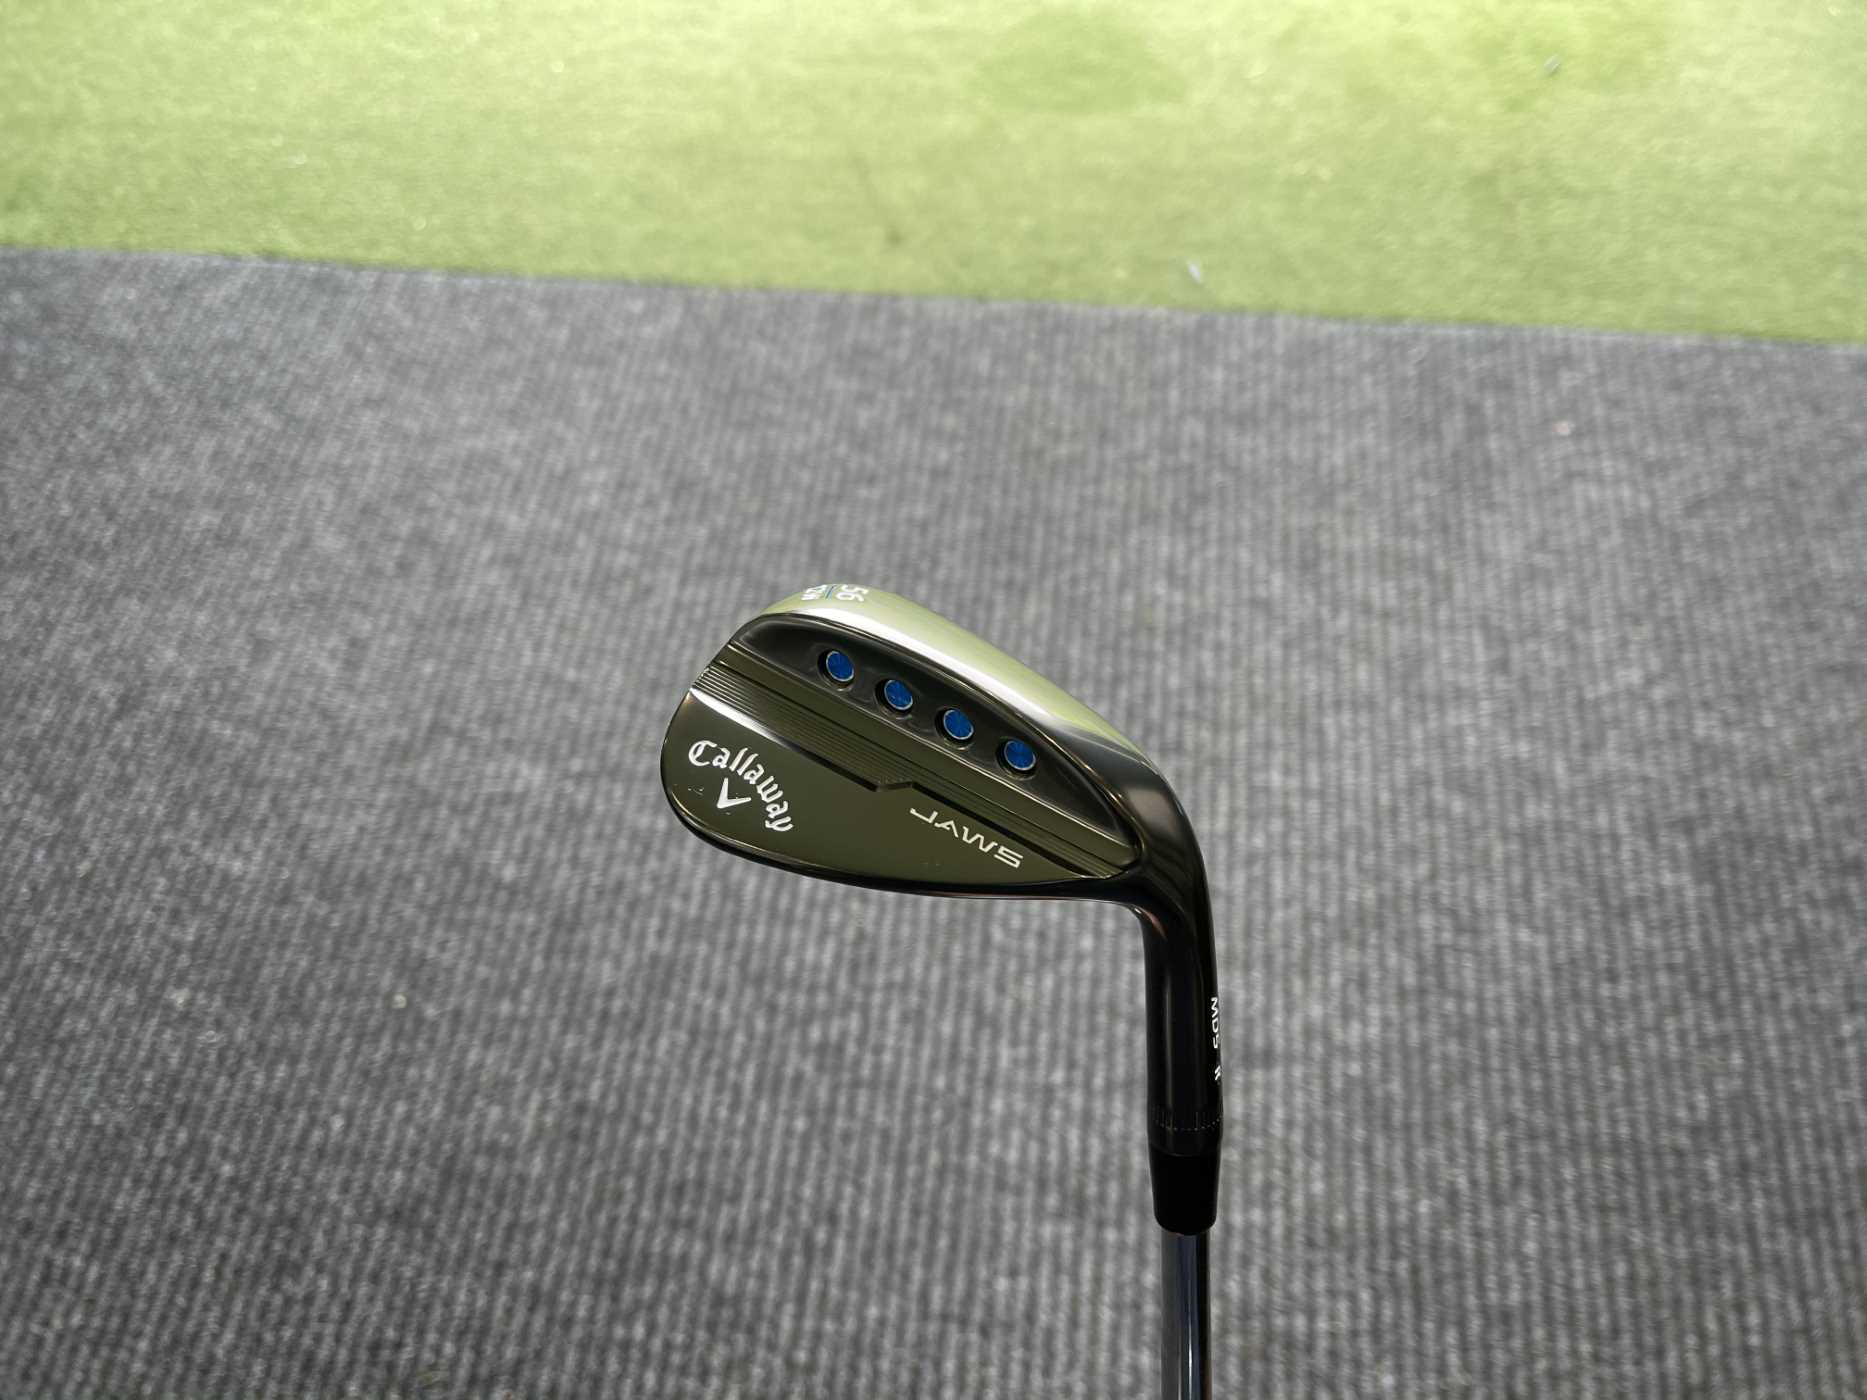 BOTW through Cool Clubs Melbourne Ping i210 and Callaway Jaws Wedges